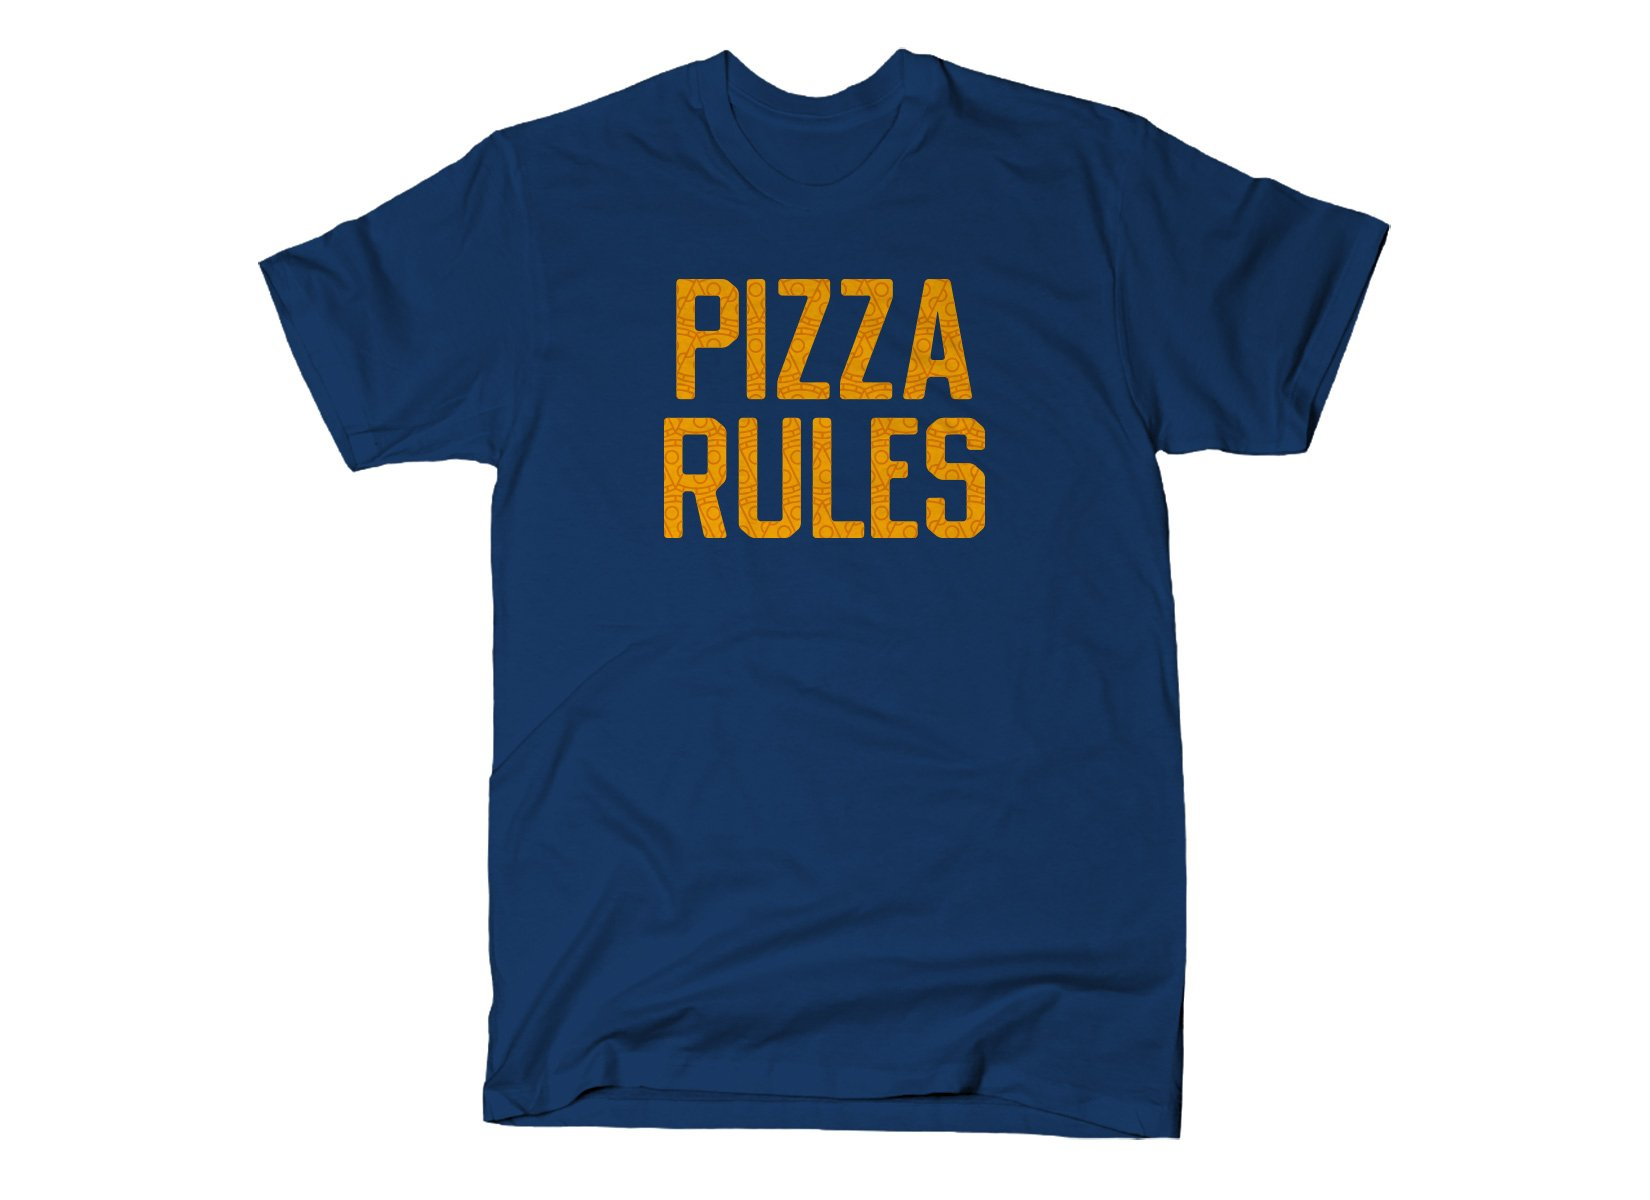 Pizza Rules on Mens T-Shirt